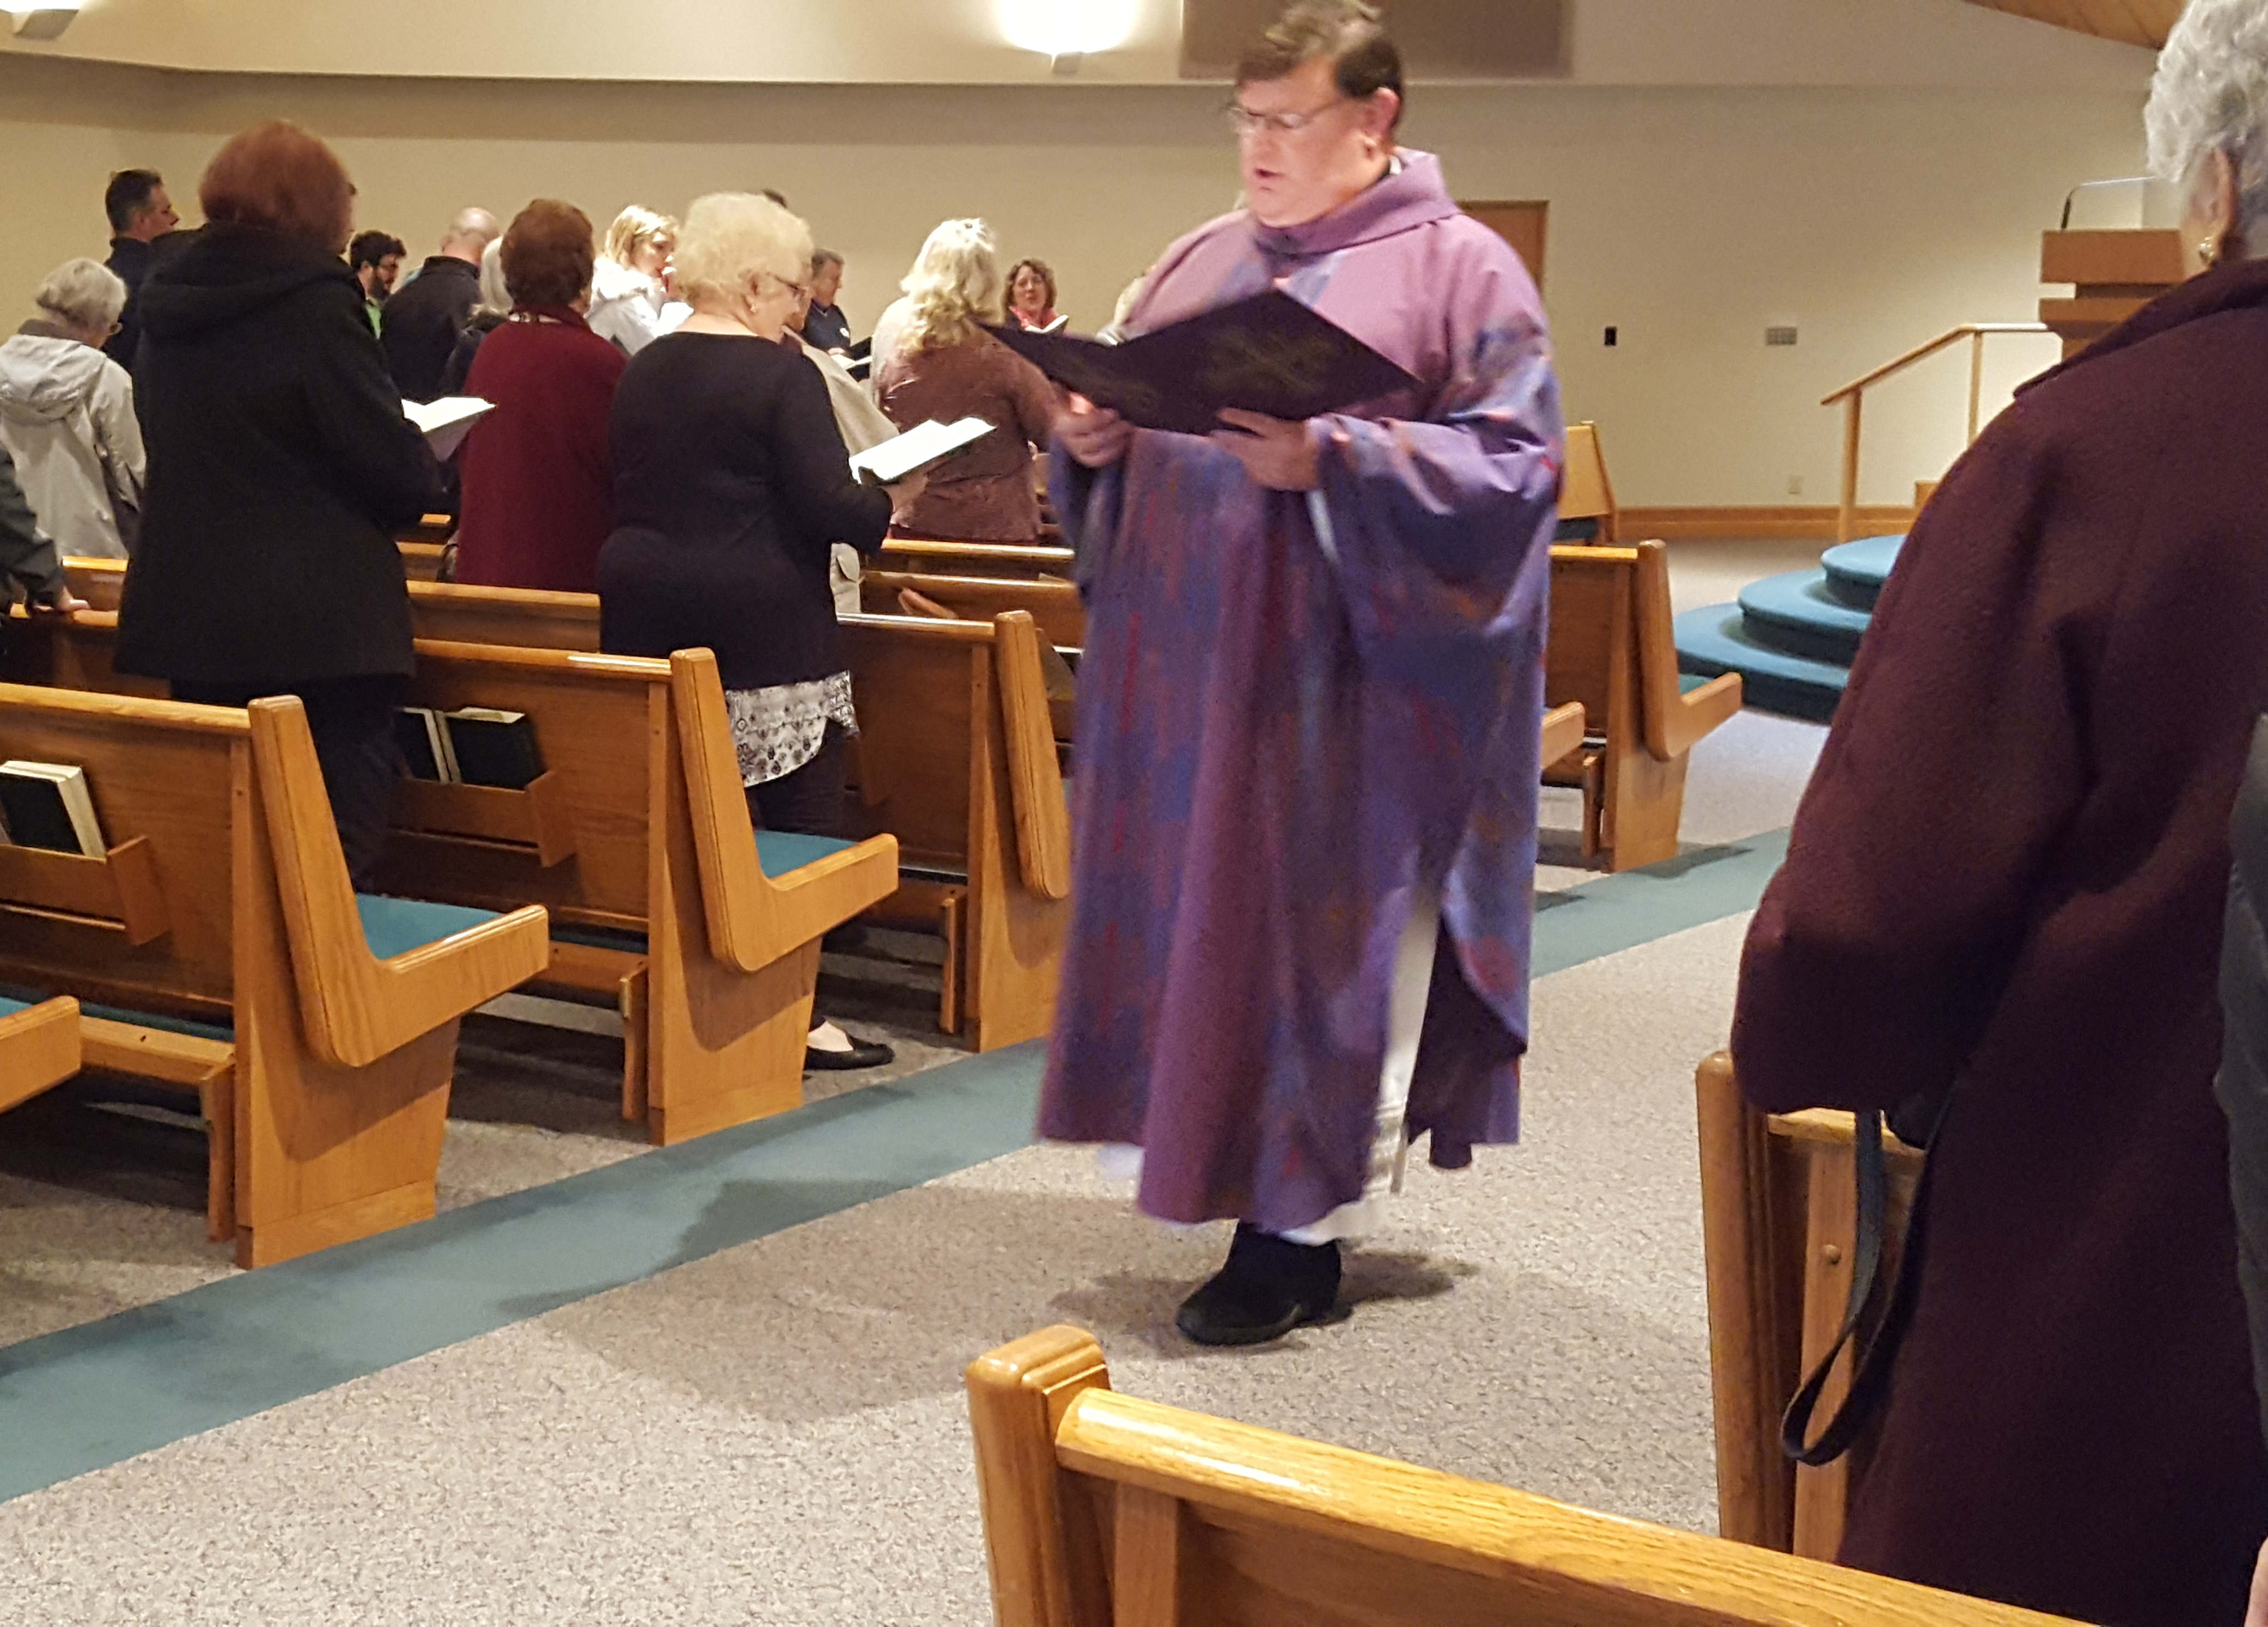 Catholic priest comes out as gay in church & receives standing ovation from his parishioners (Photos/Video)